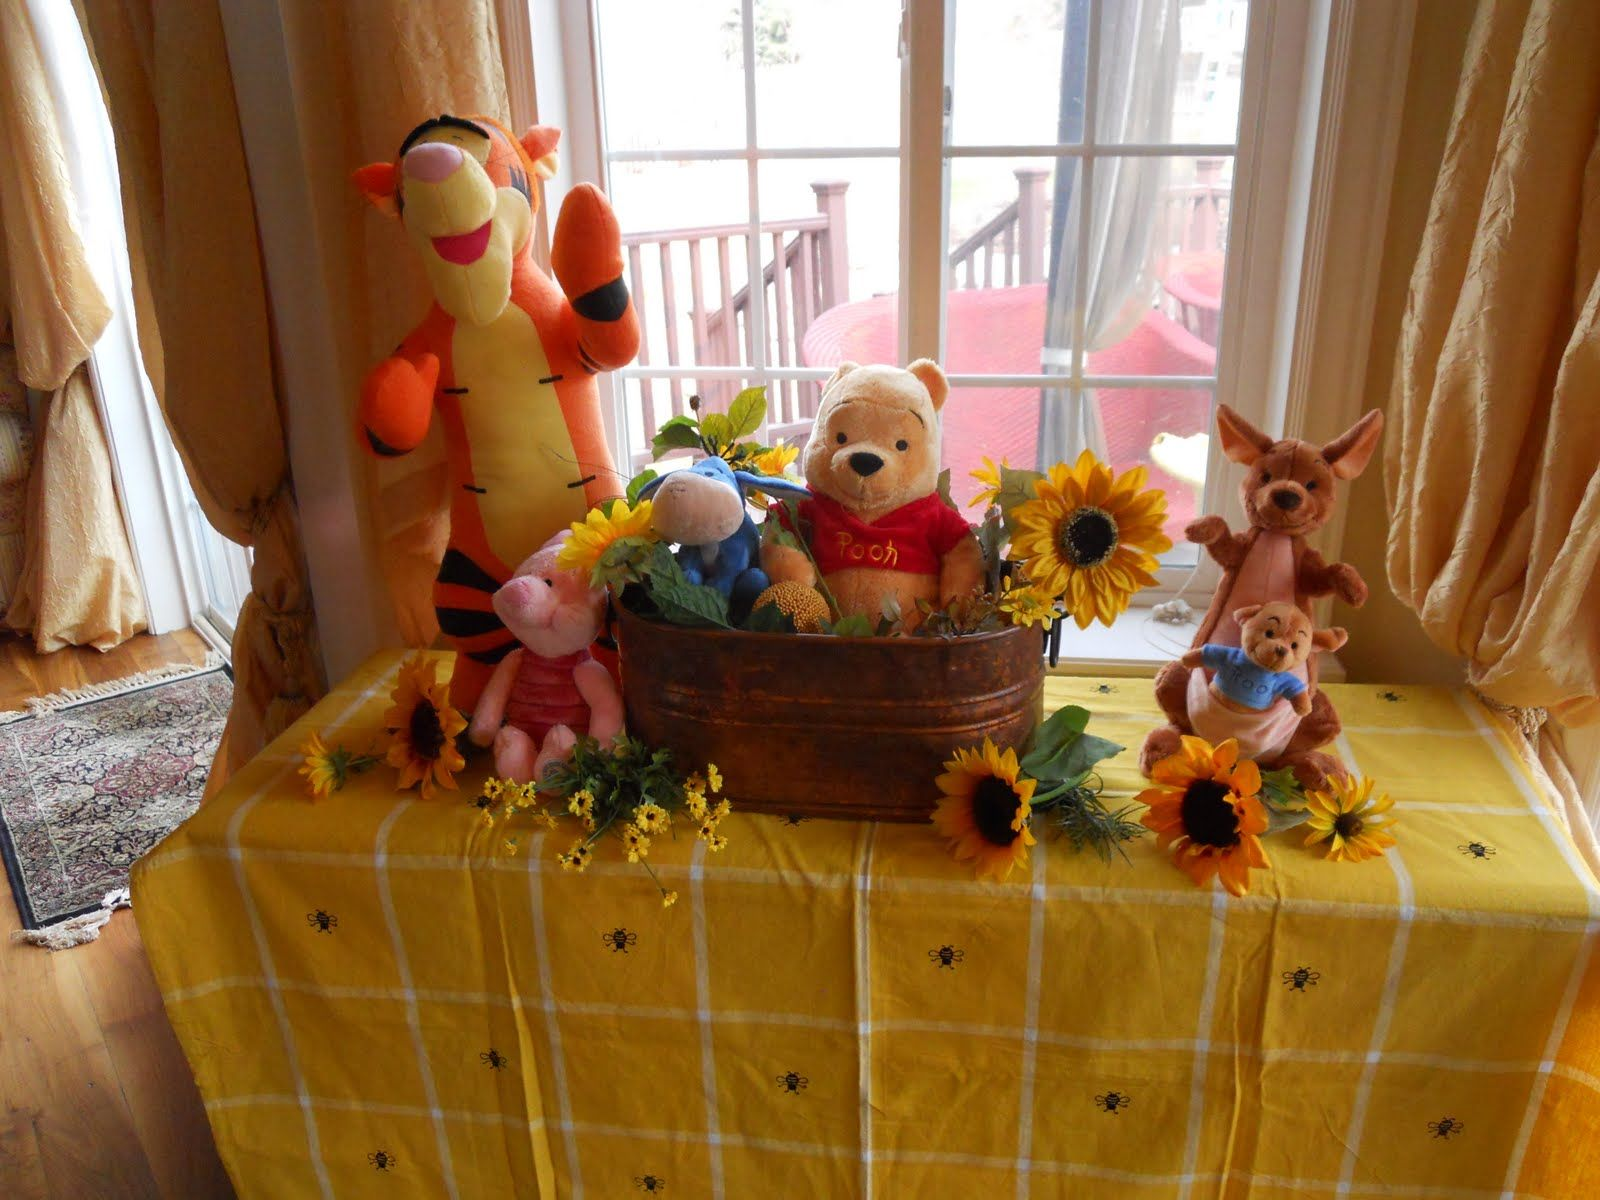 How To Use Winnie The Pooh Theme On Your Baby Shower | Baby Shower .